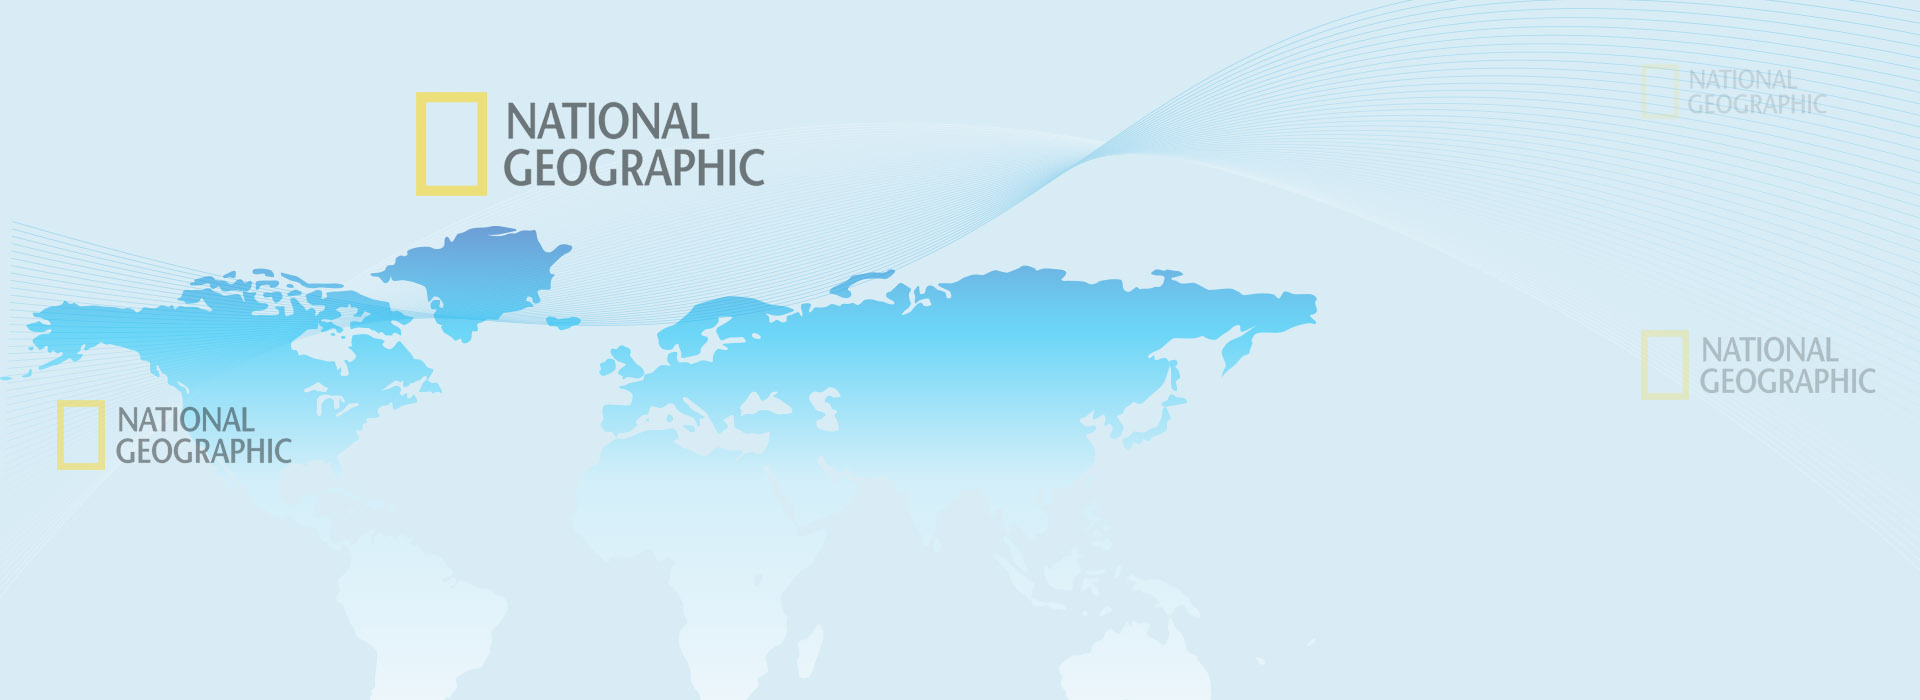 national-geography